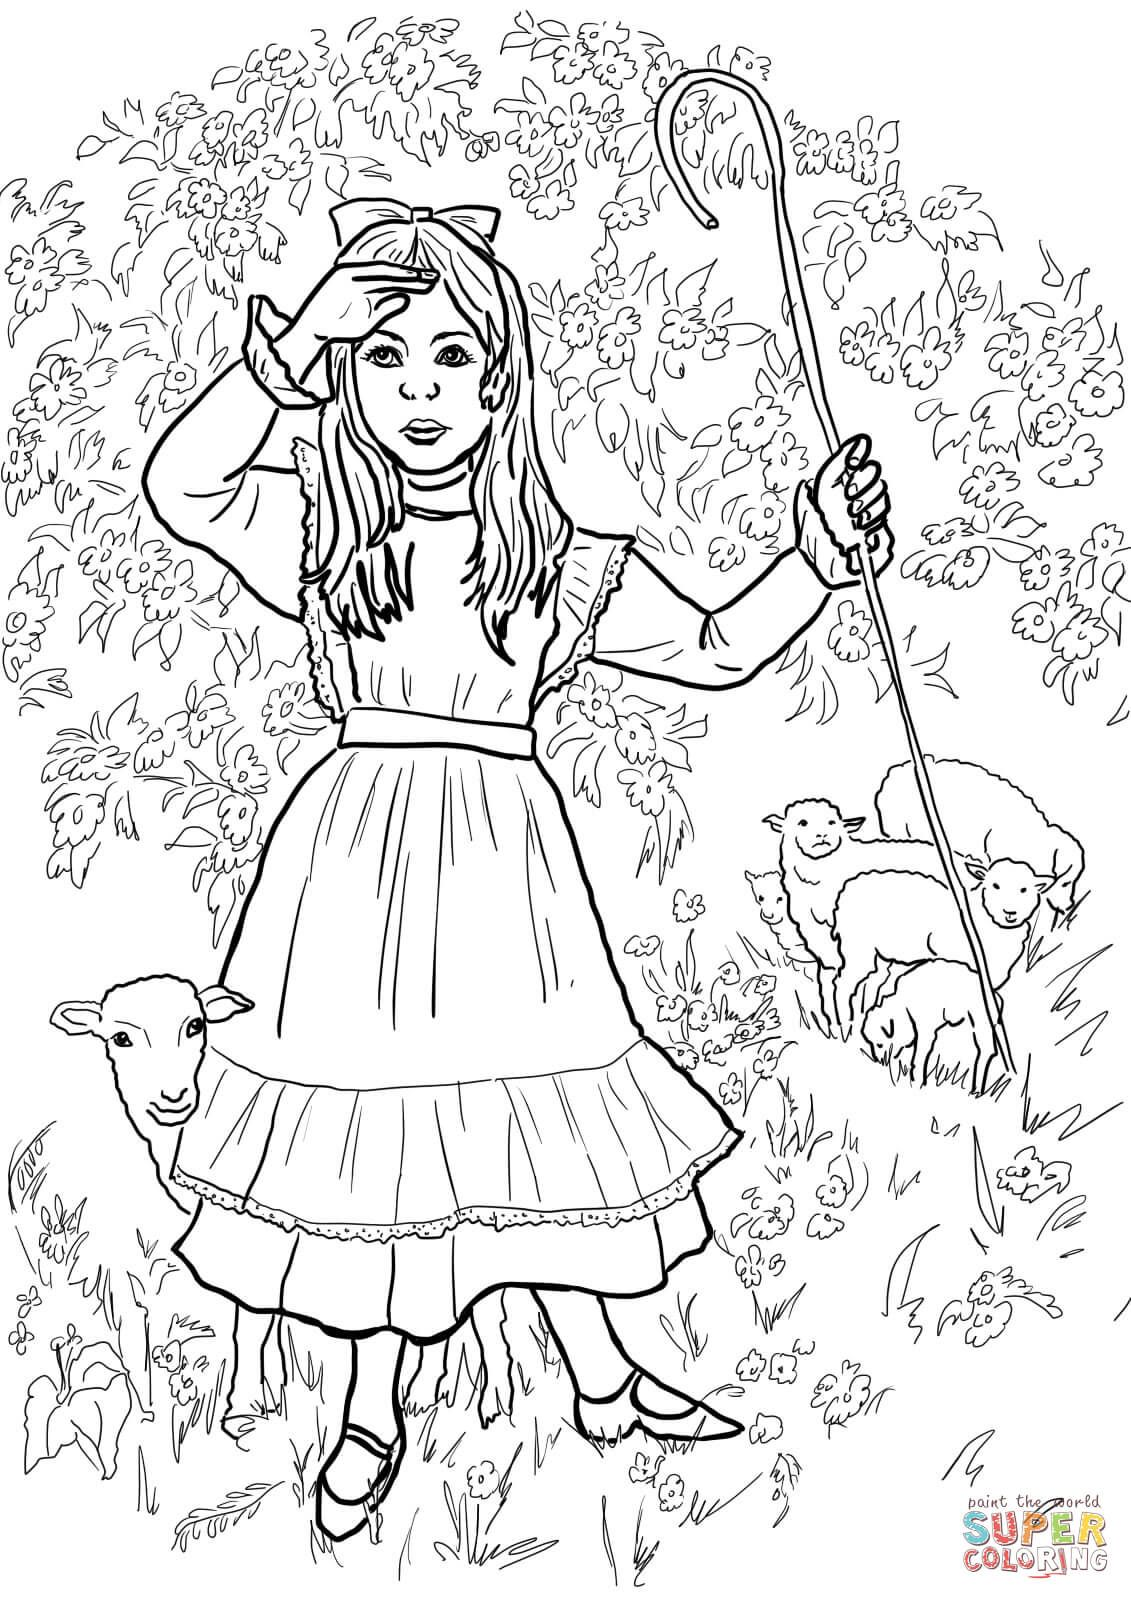 Little Bo Peep Nursery Rhyme Coloring Page Free Printable